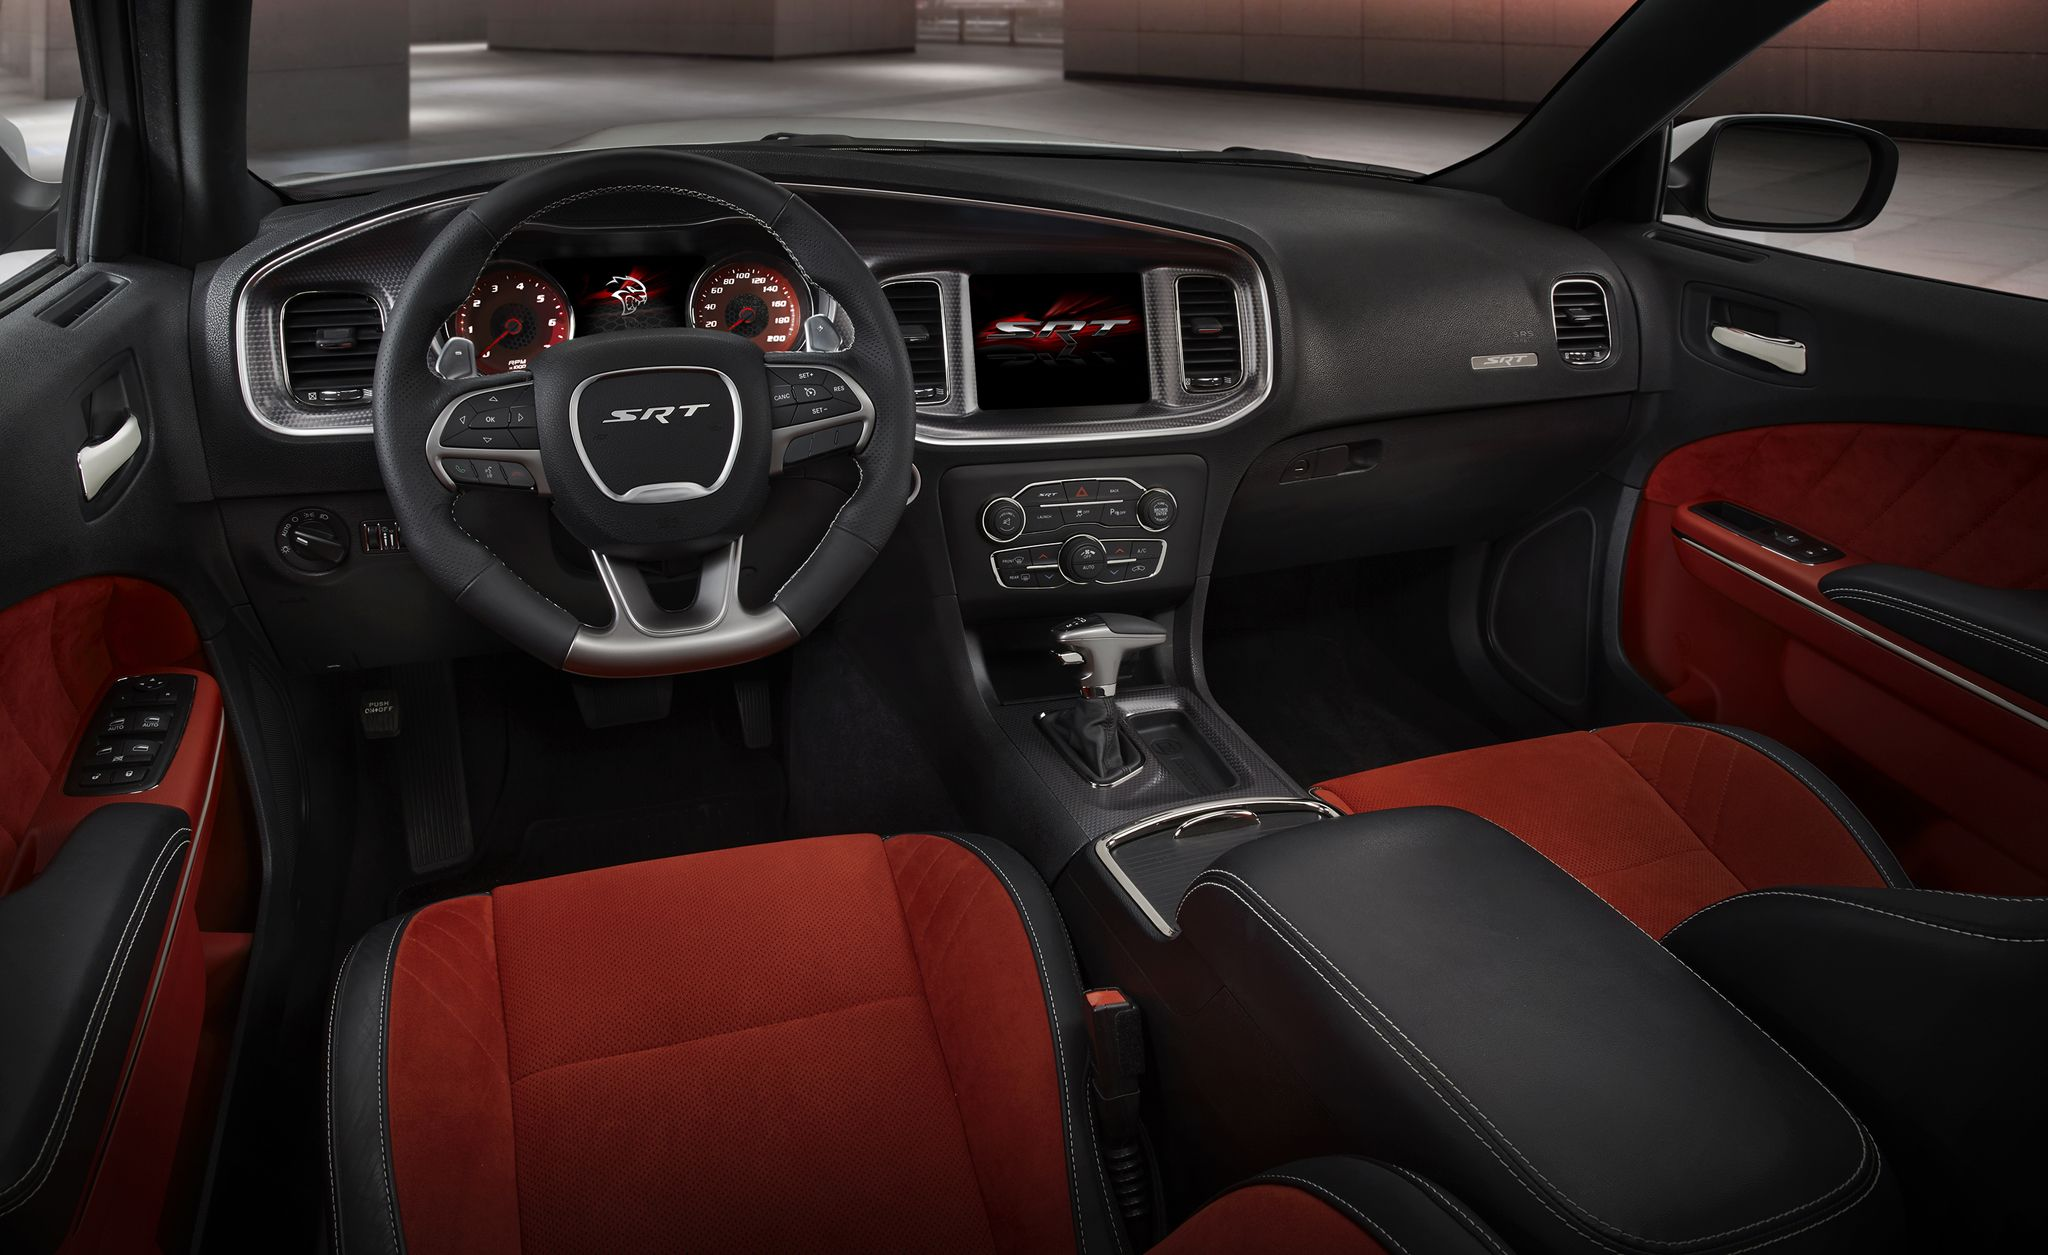 Learn More About The Wild 2015 Dodge Charger SRT Hellcat In This First Look  Story, With Details And Photos Of The New 2015 Charger SRT Hellcat!